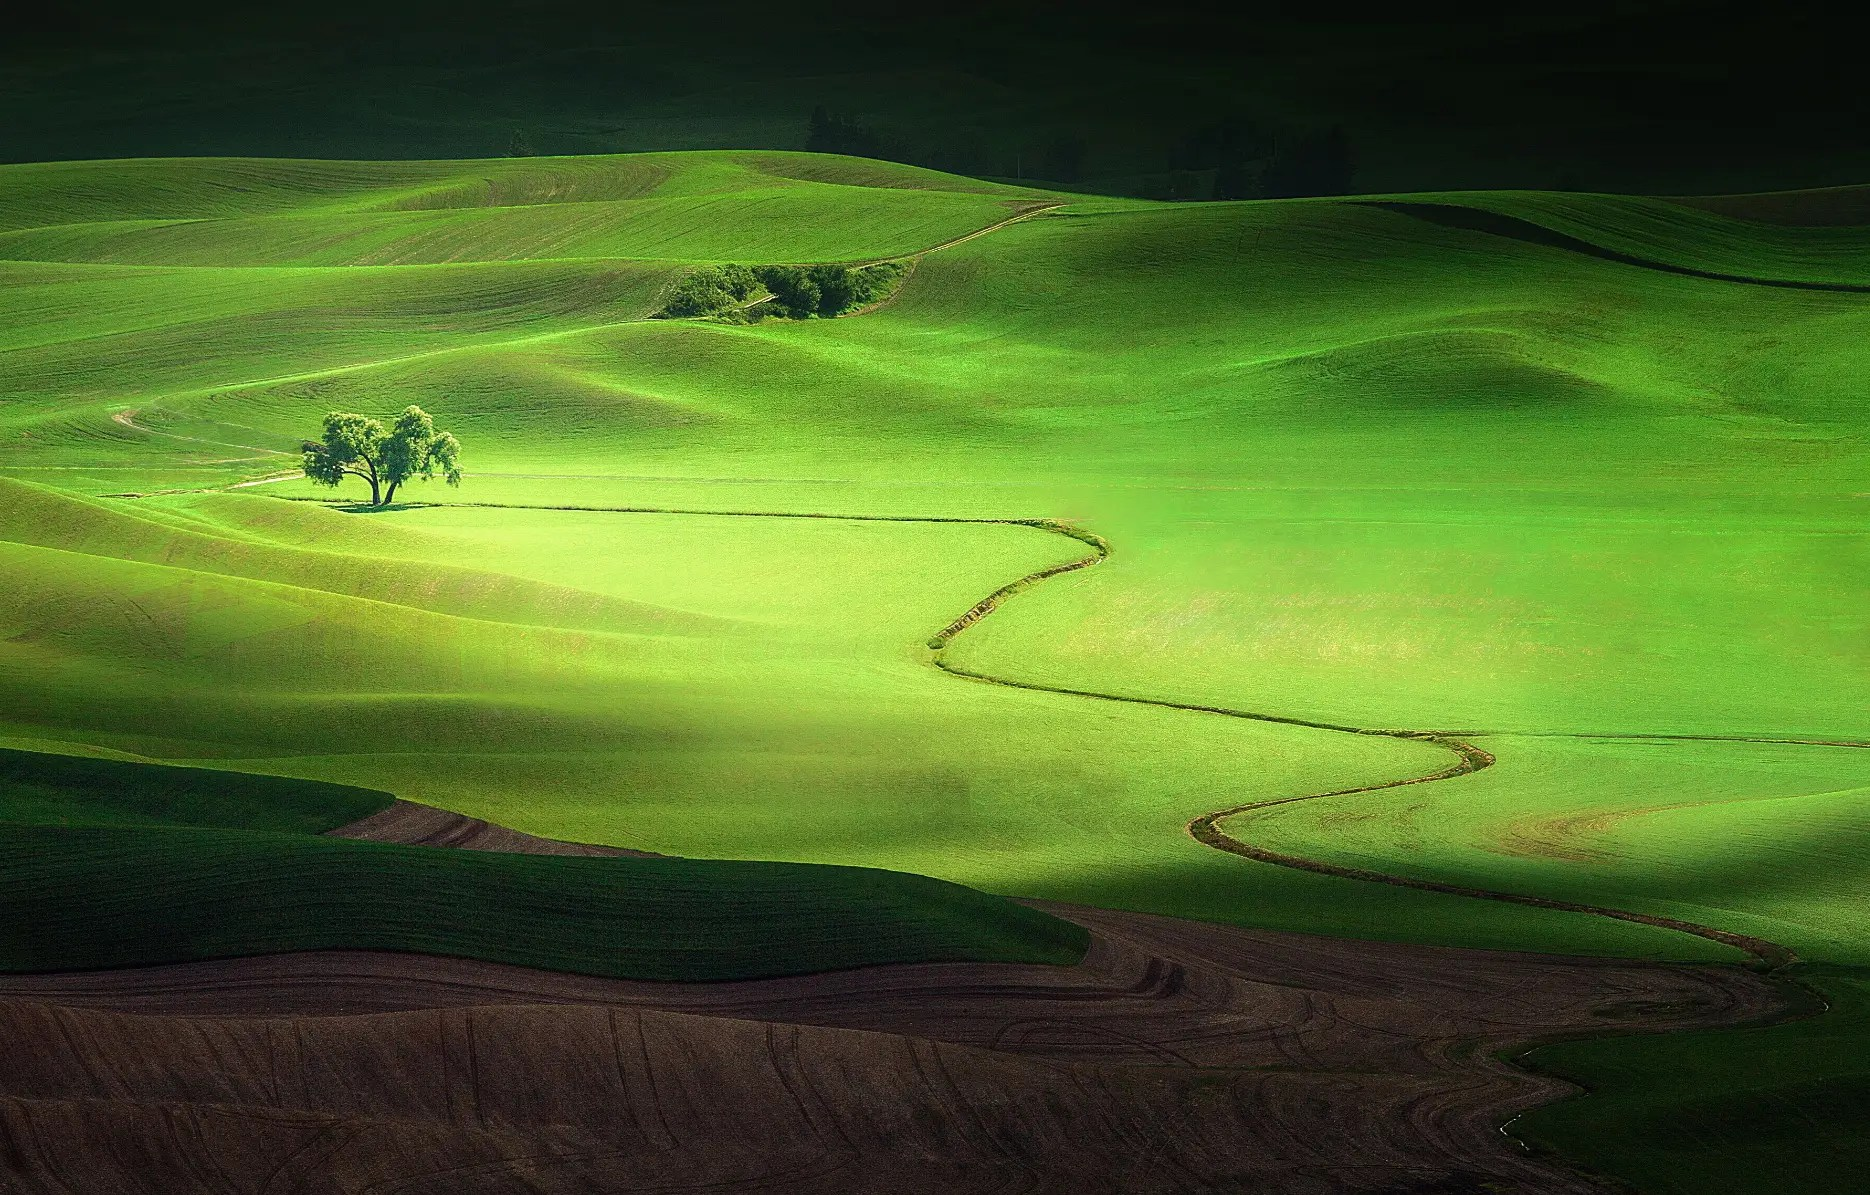 Shadows And Light: A lone tree in the Palouse region of Washington